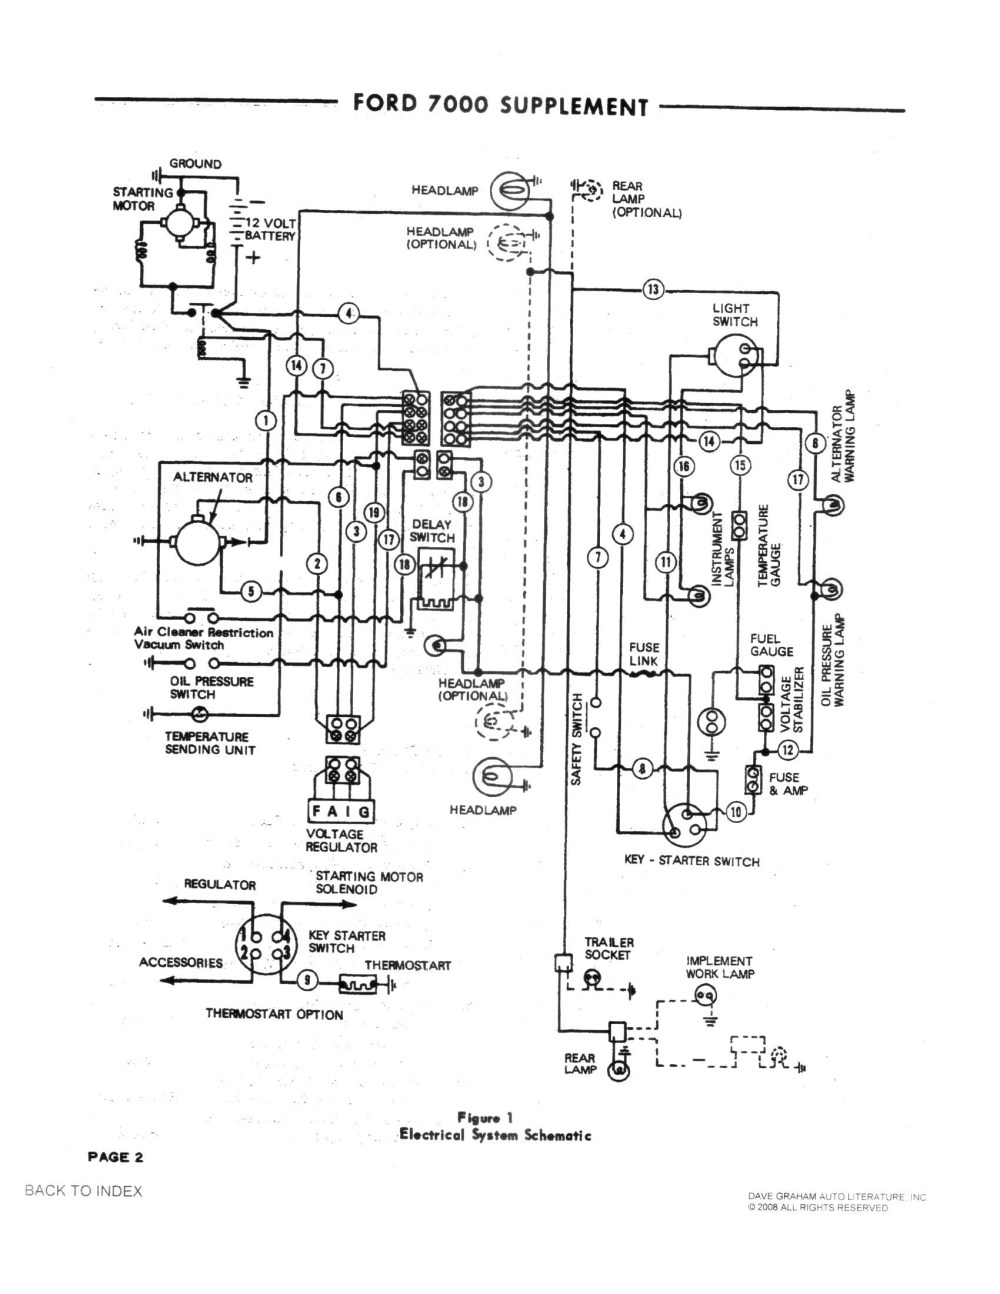 medium resolution of 4600 ford tractor wiring diagram schema diagram database ford 4600 tractor wiring diagram 4600 ford tractor